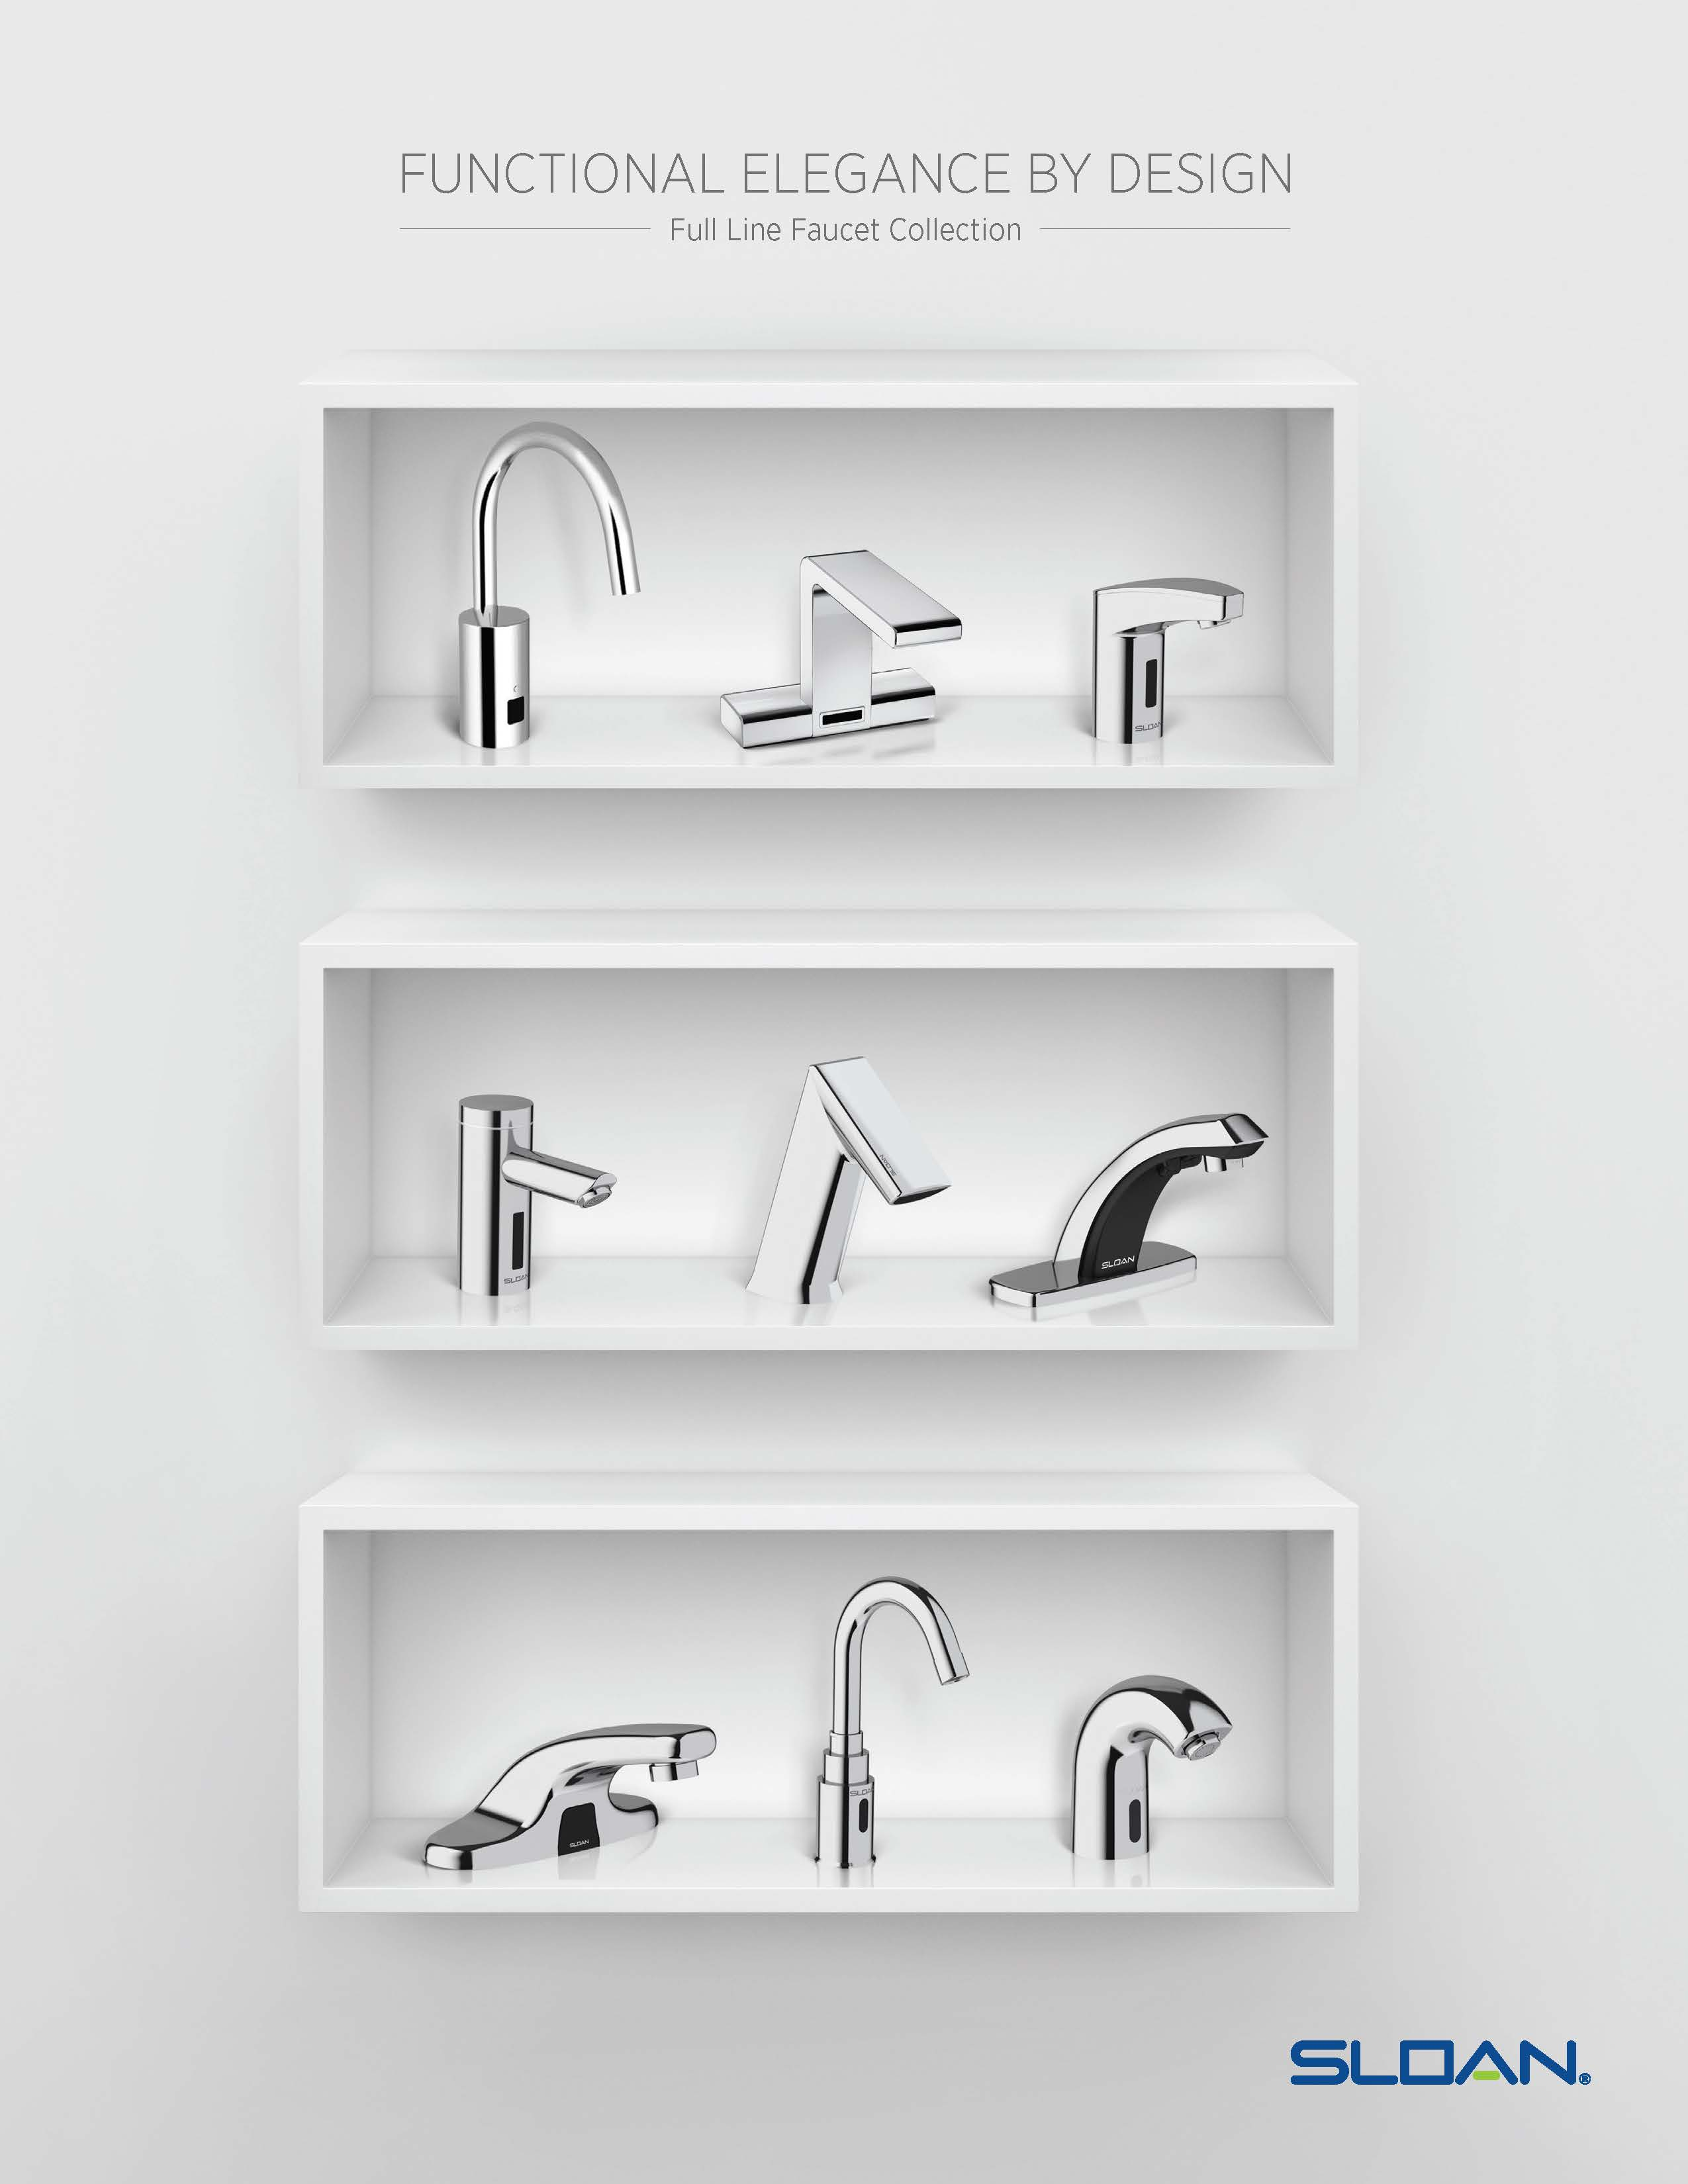 plumbing leading s by choices faucets applications of selecting process commercial simplified simplifies faucet for restrooms systems has selection world the manufacturer sloan